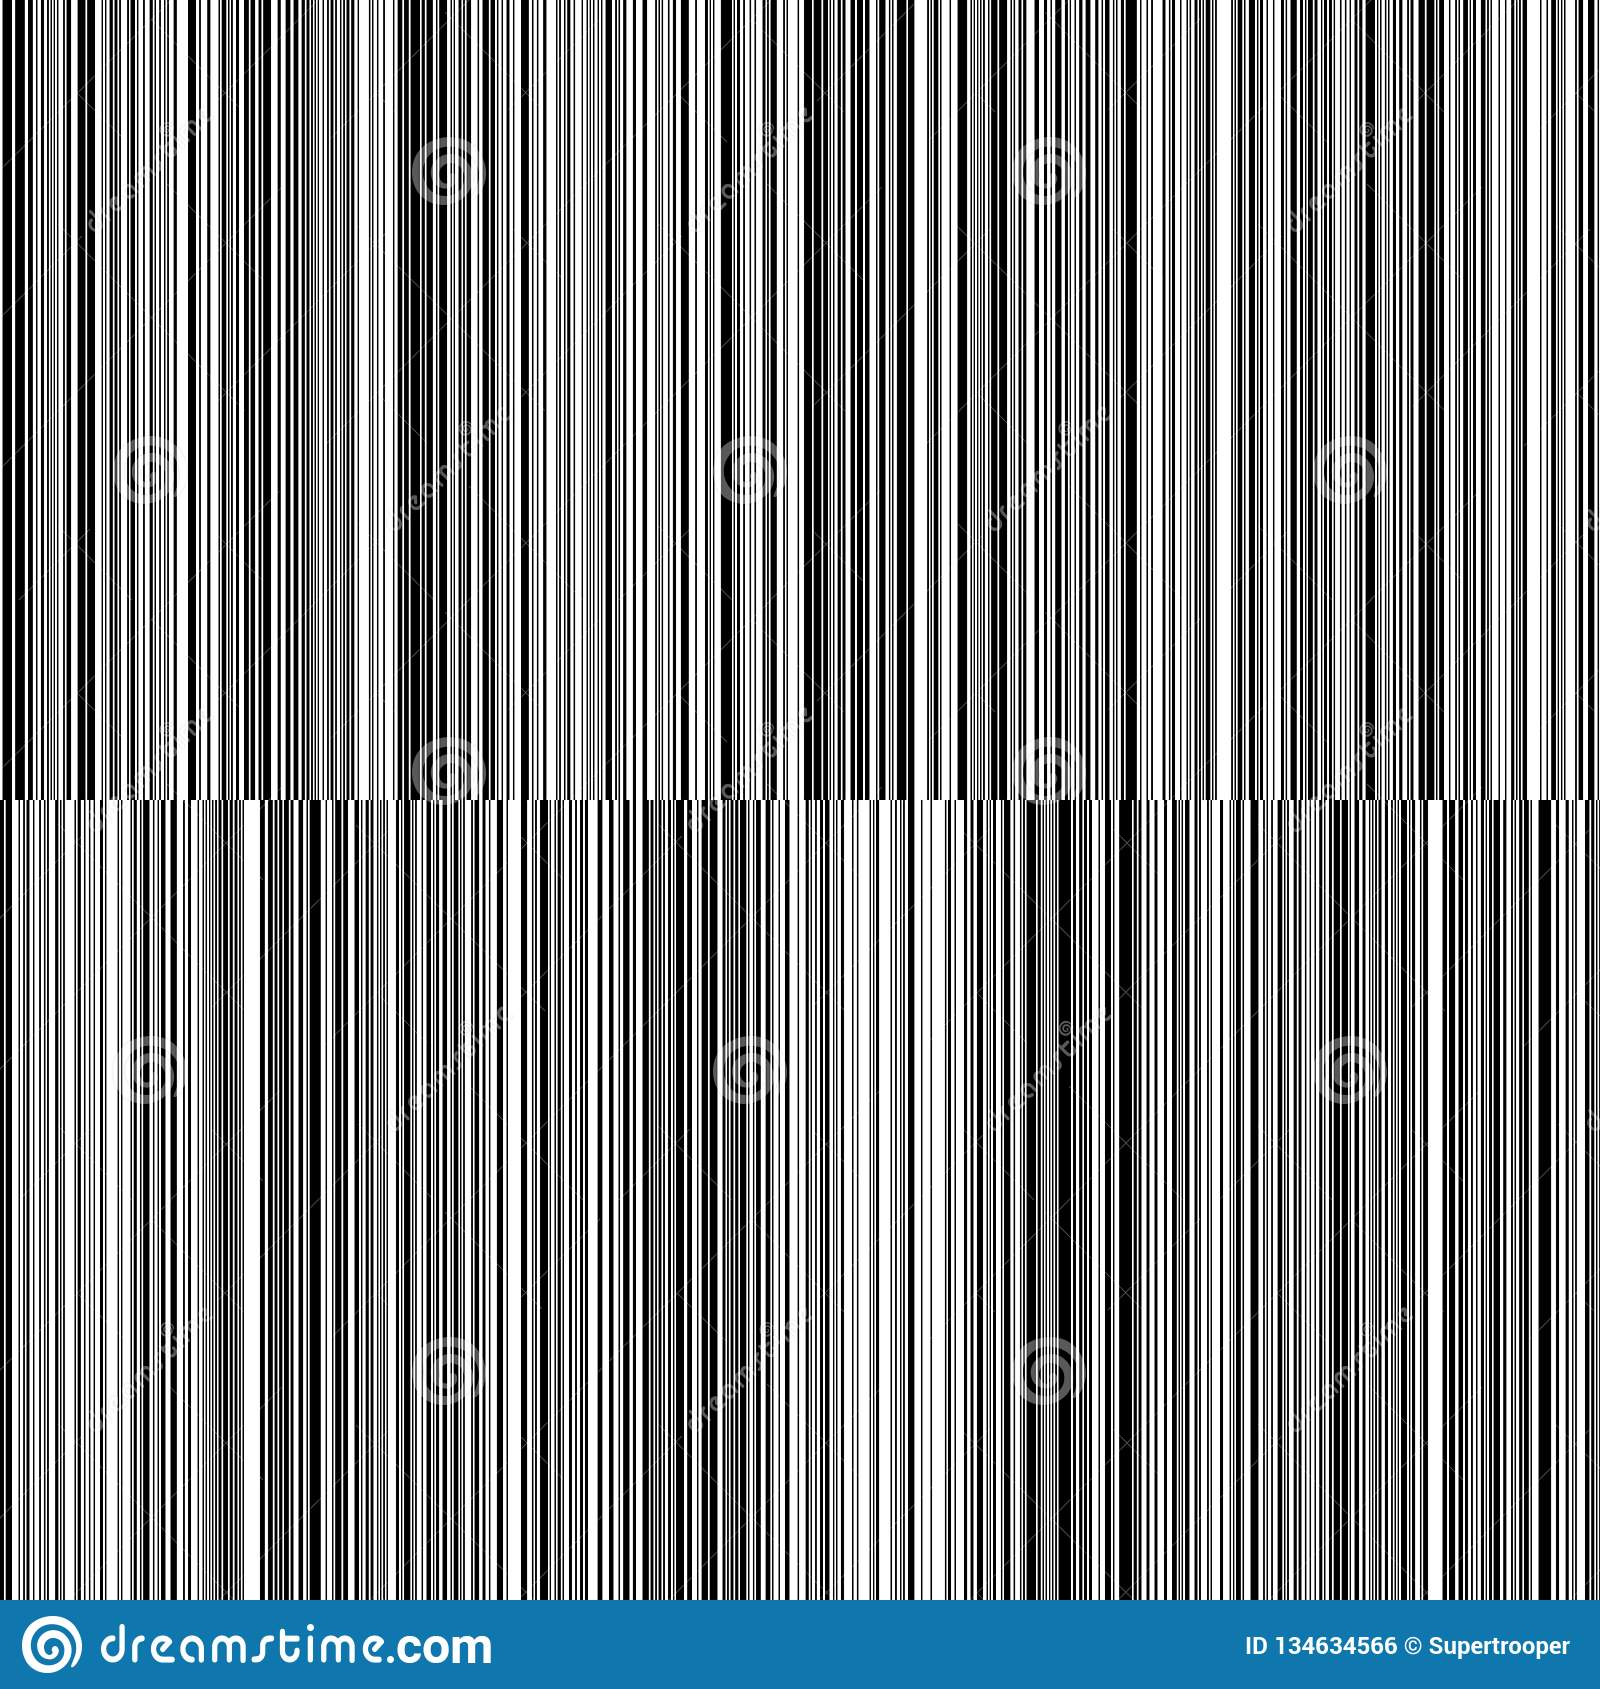 Line variable thickness black and white vertical lines background